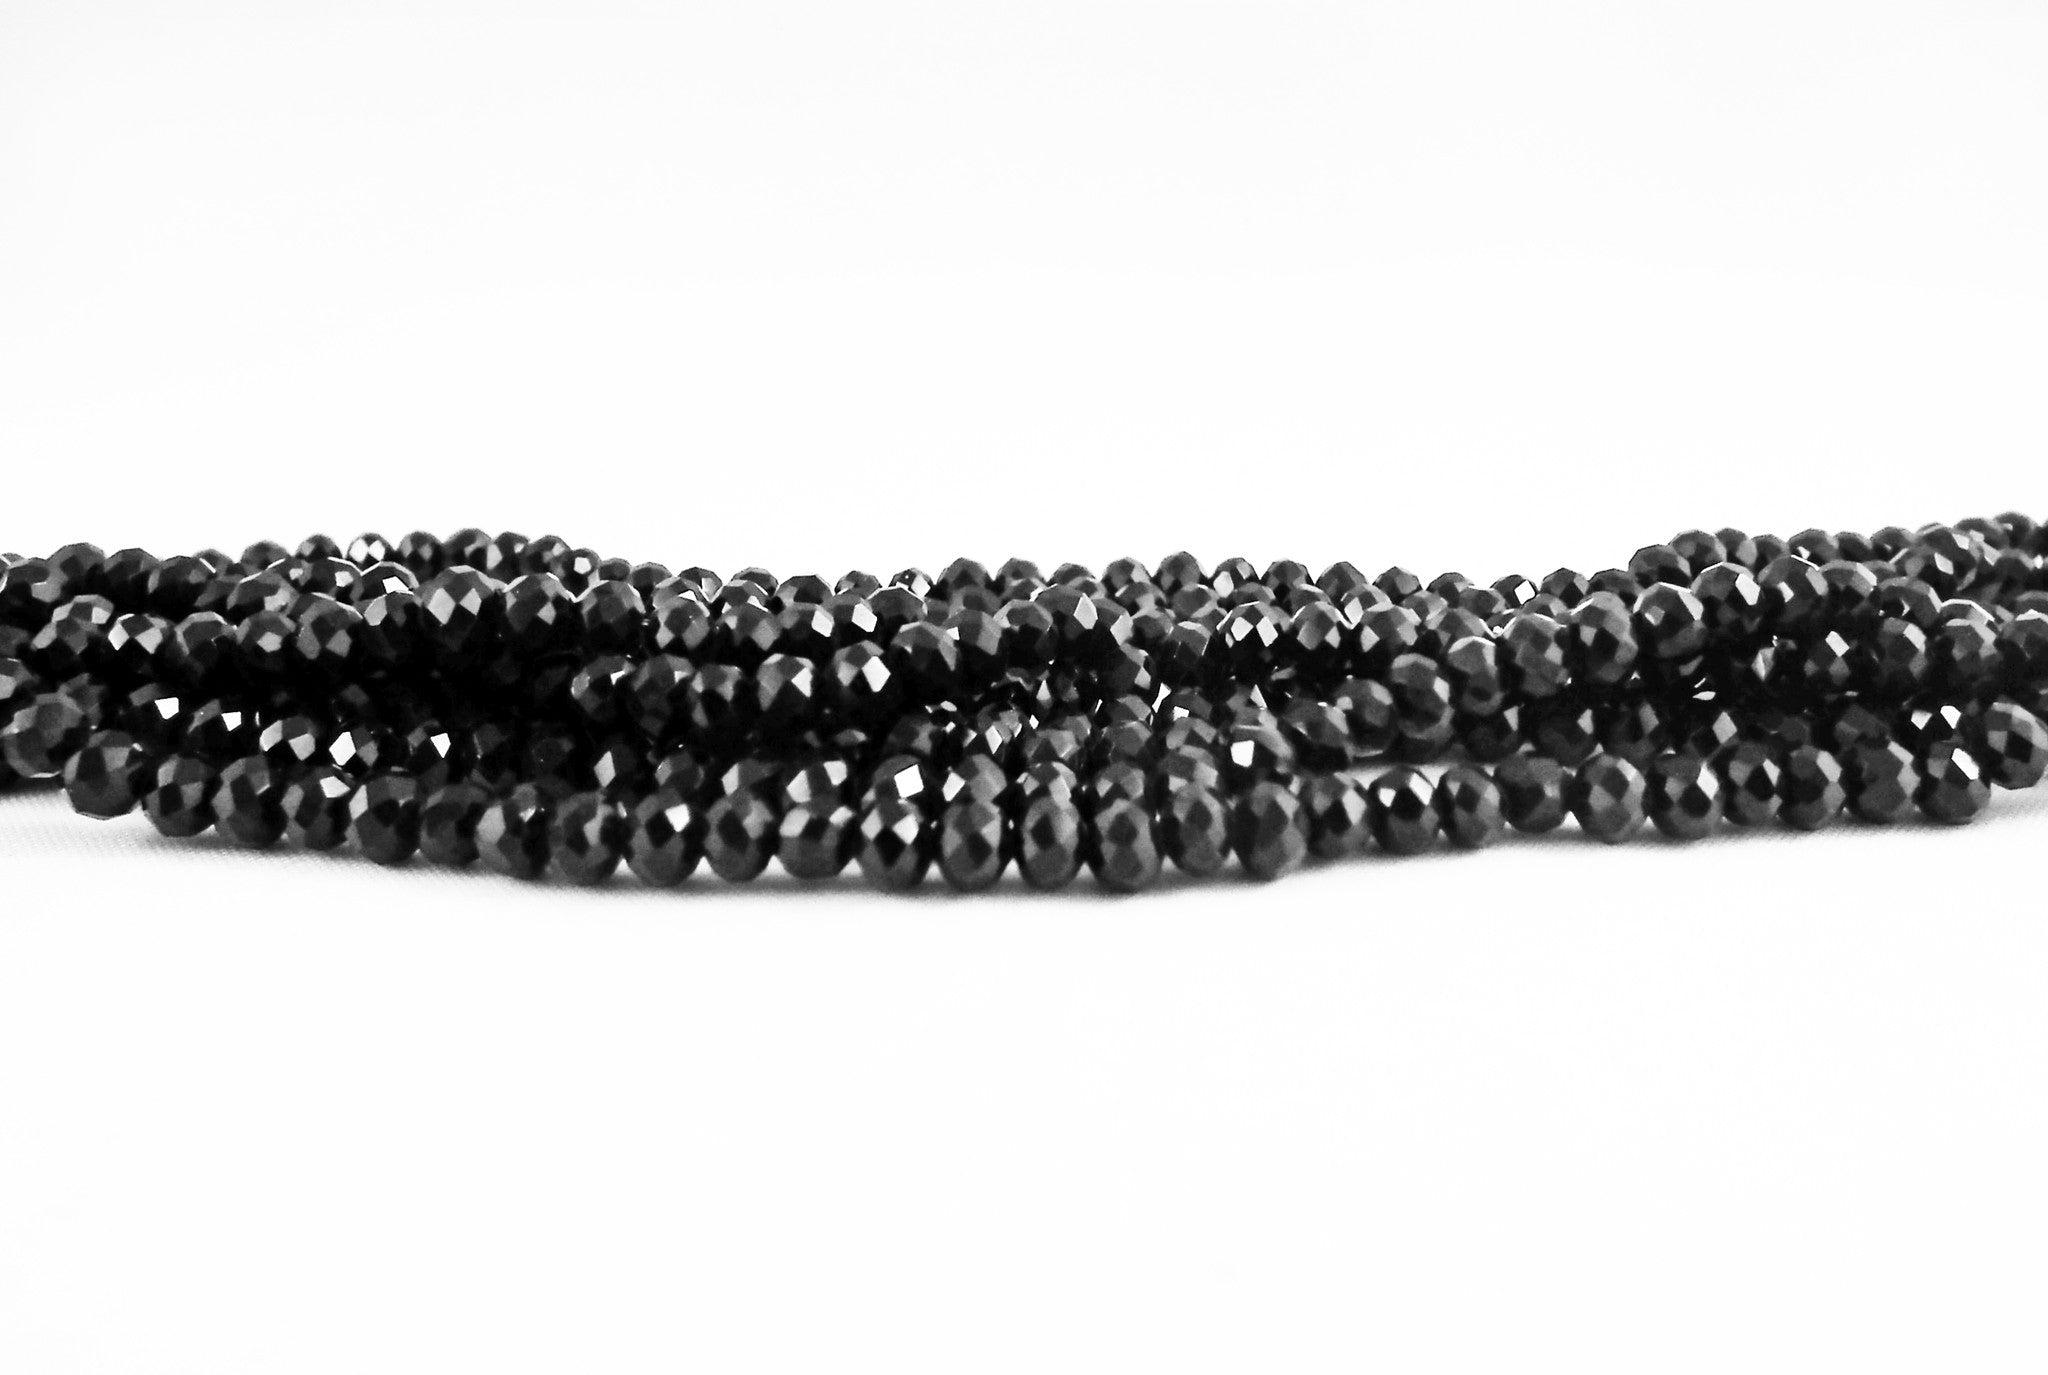 SW02N - Perles en Verre Noir 3X4mm Black Glass Beads - No Mercy Making